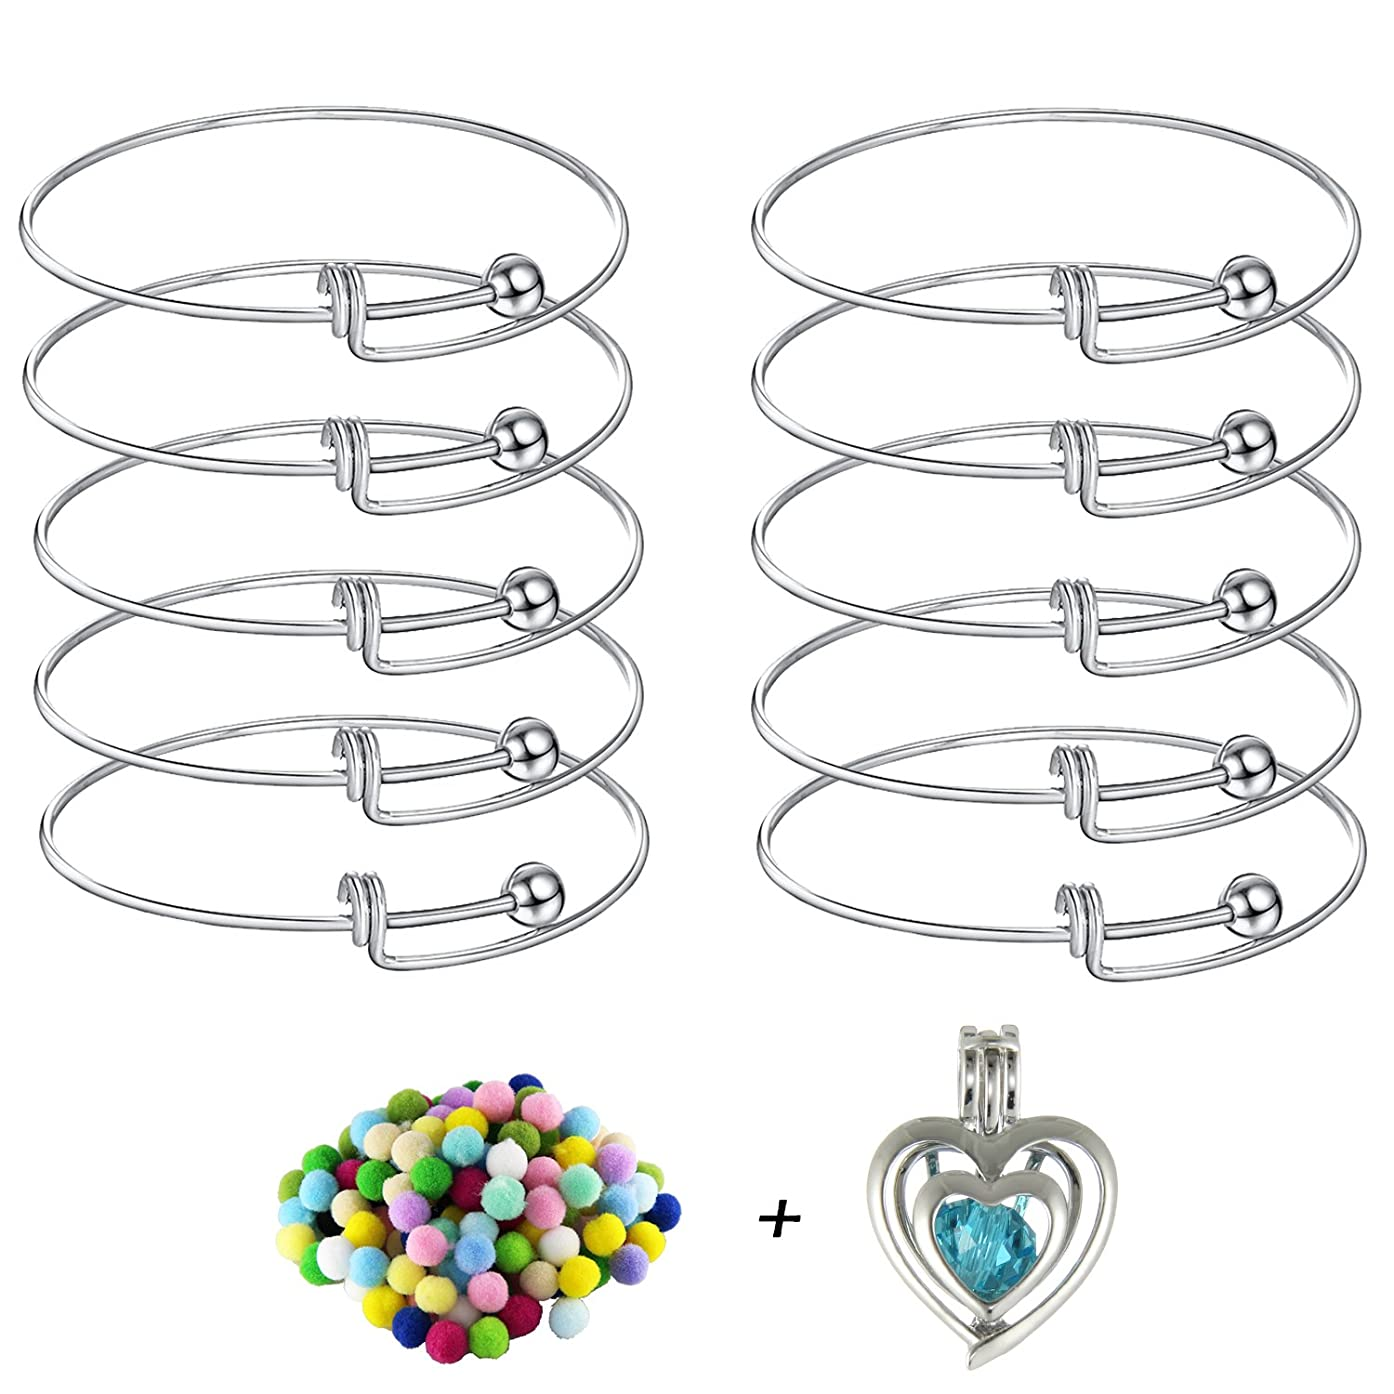 10pcs Expandable Wire Blank Bangle Bracelet for DIY Jewelry Making, Stainless Steel Tone 65mm Cage Bracelet for Women